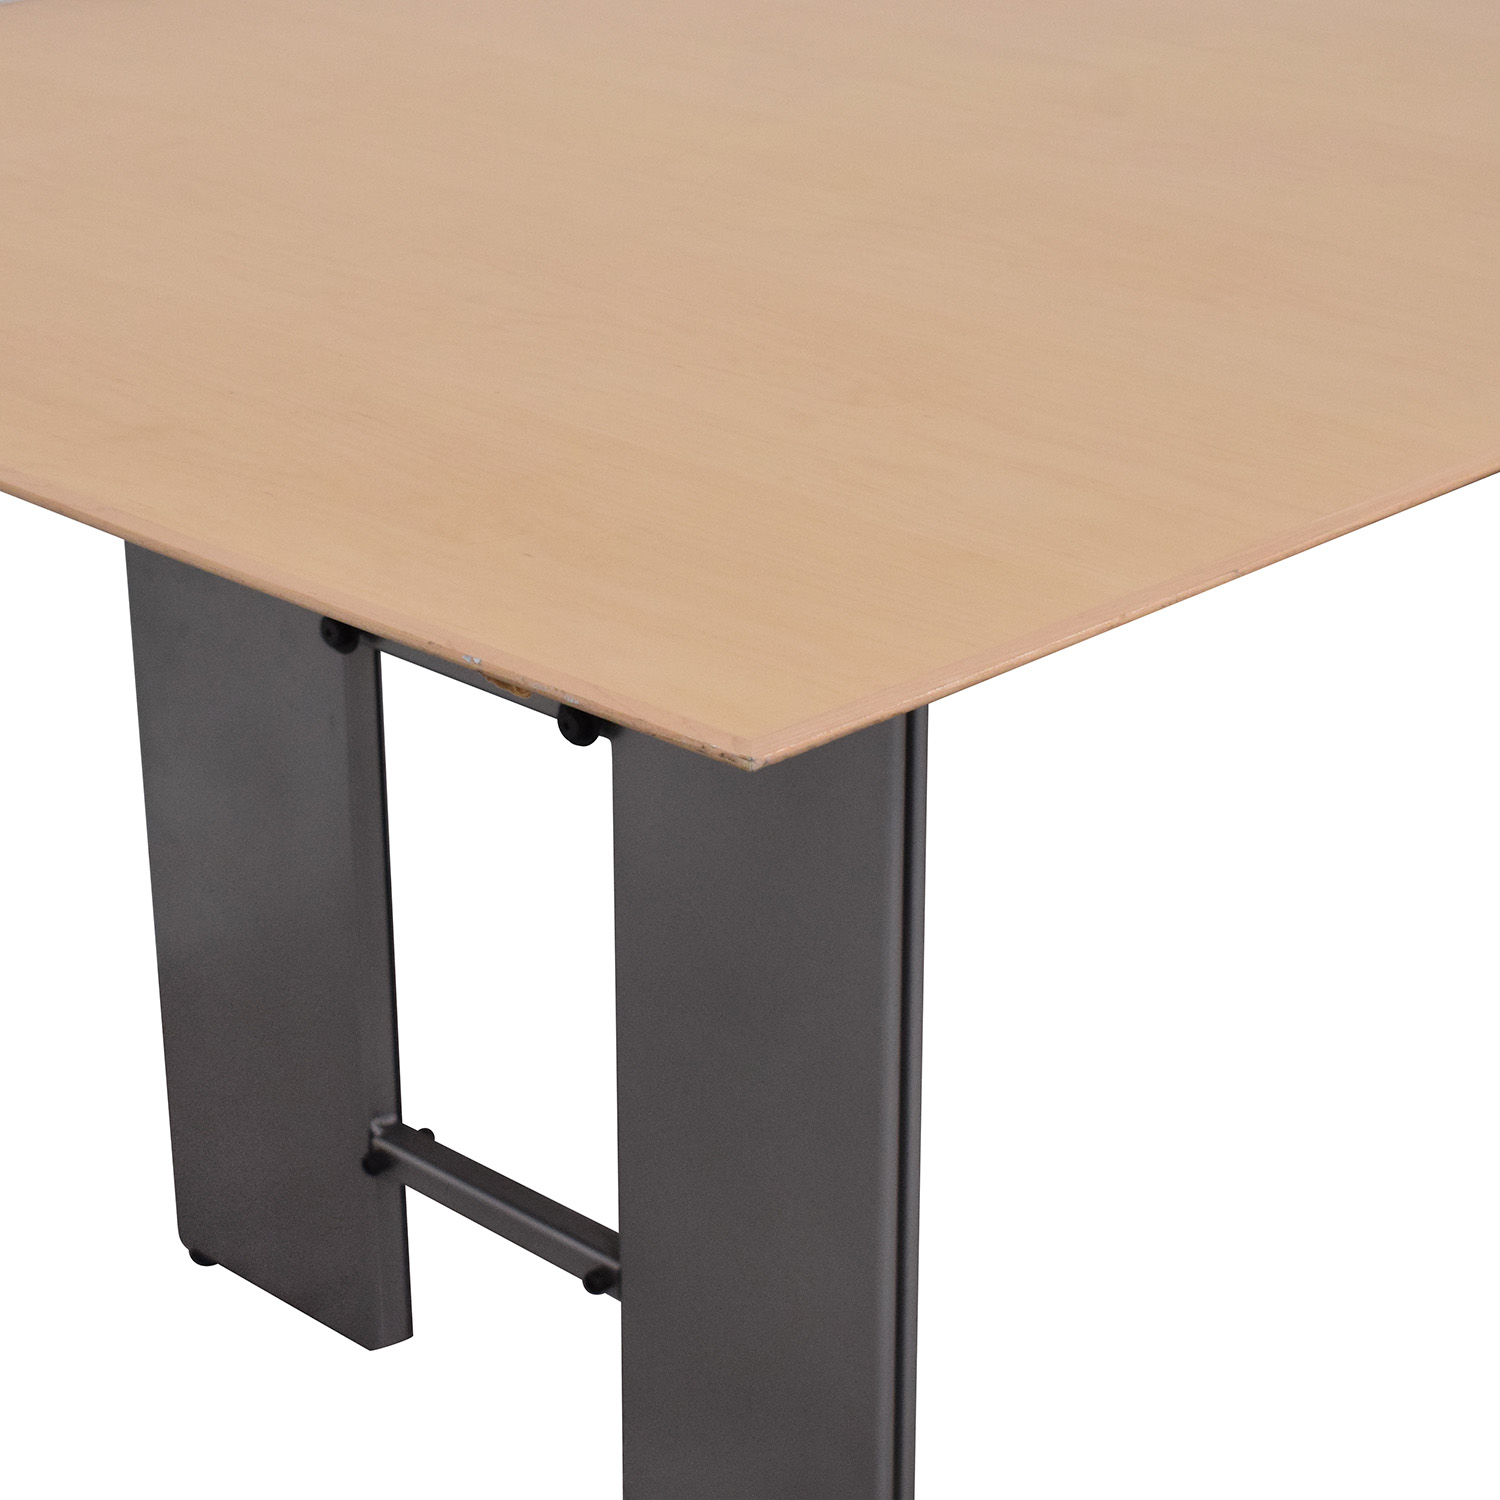 shop Office Conference Center Officeworks Tables